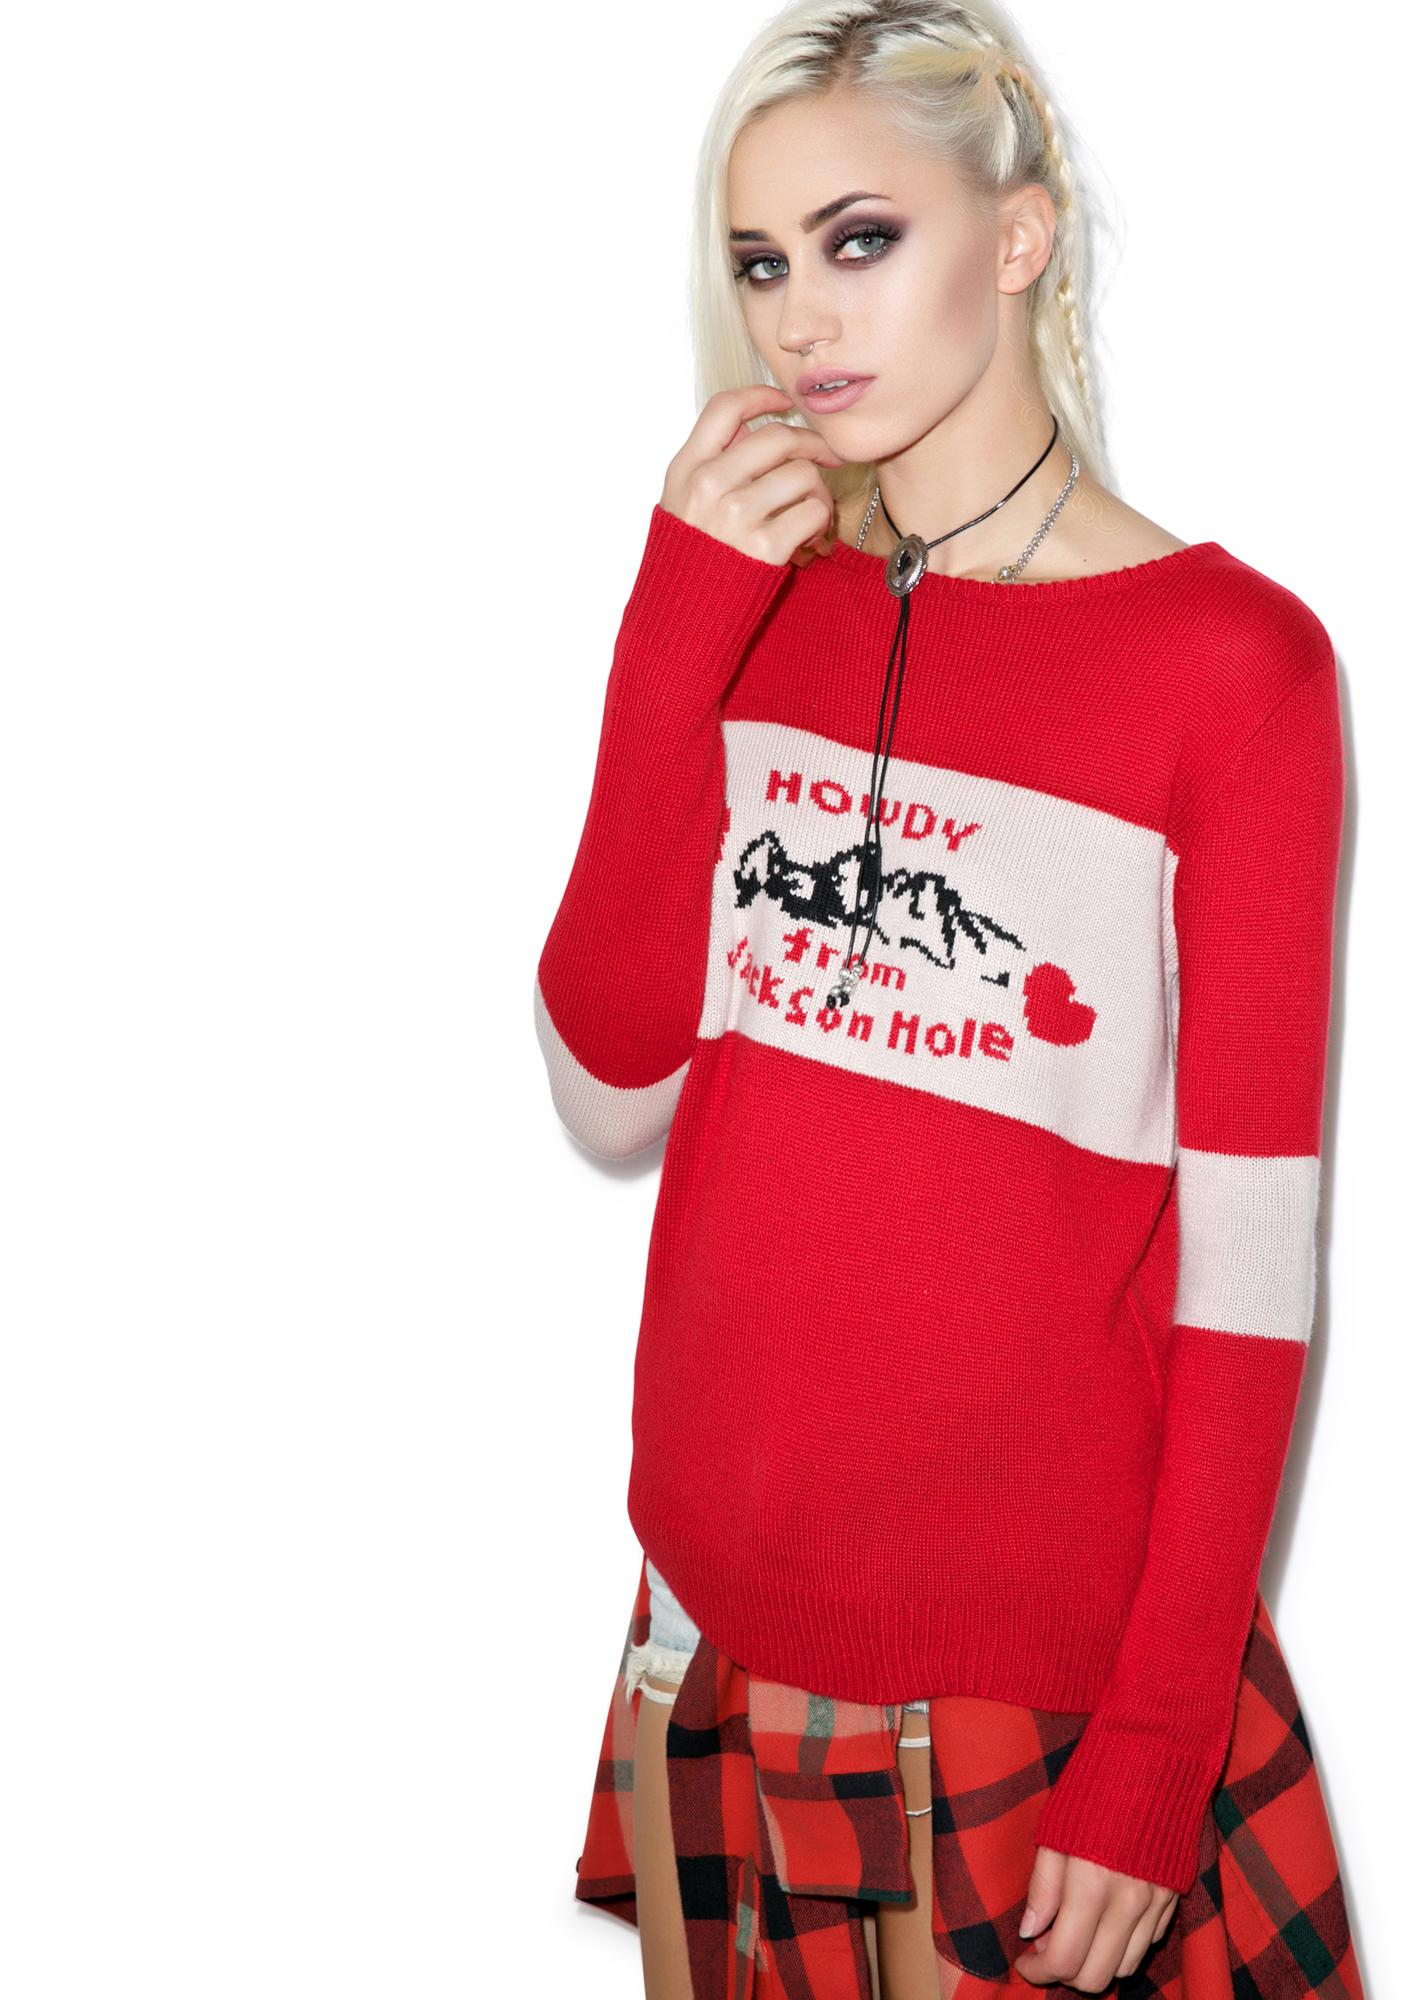 For Love & Lemons Howdy From Jackson Hole Sweater